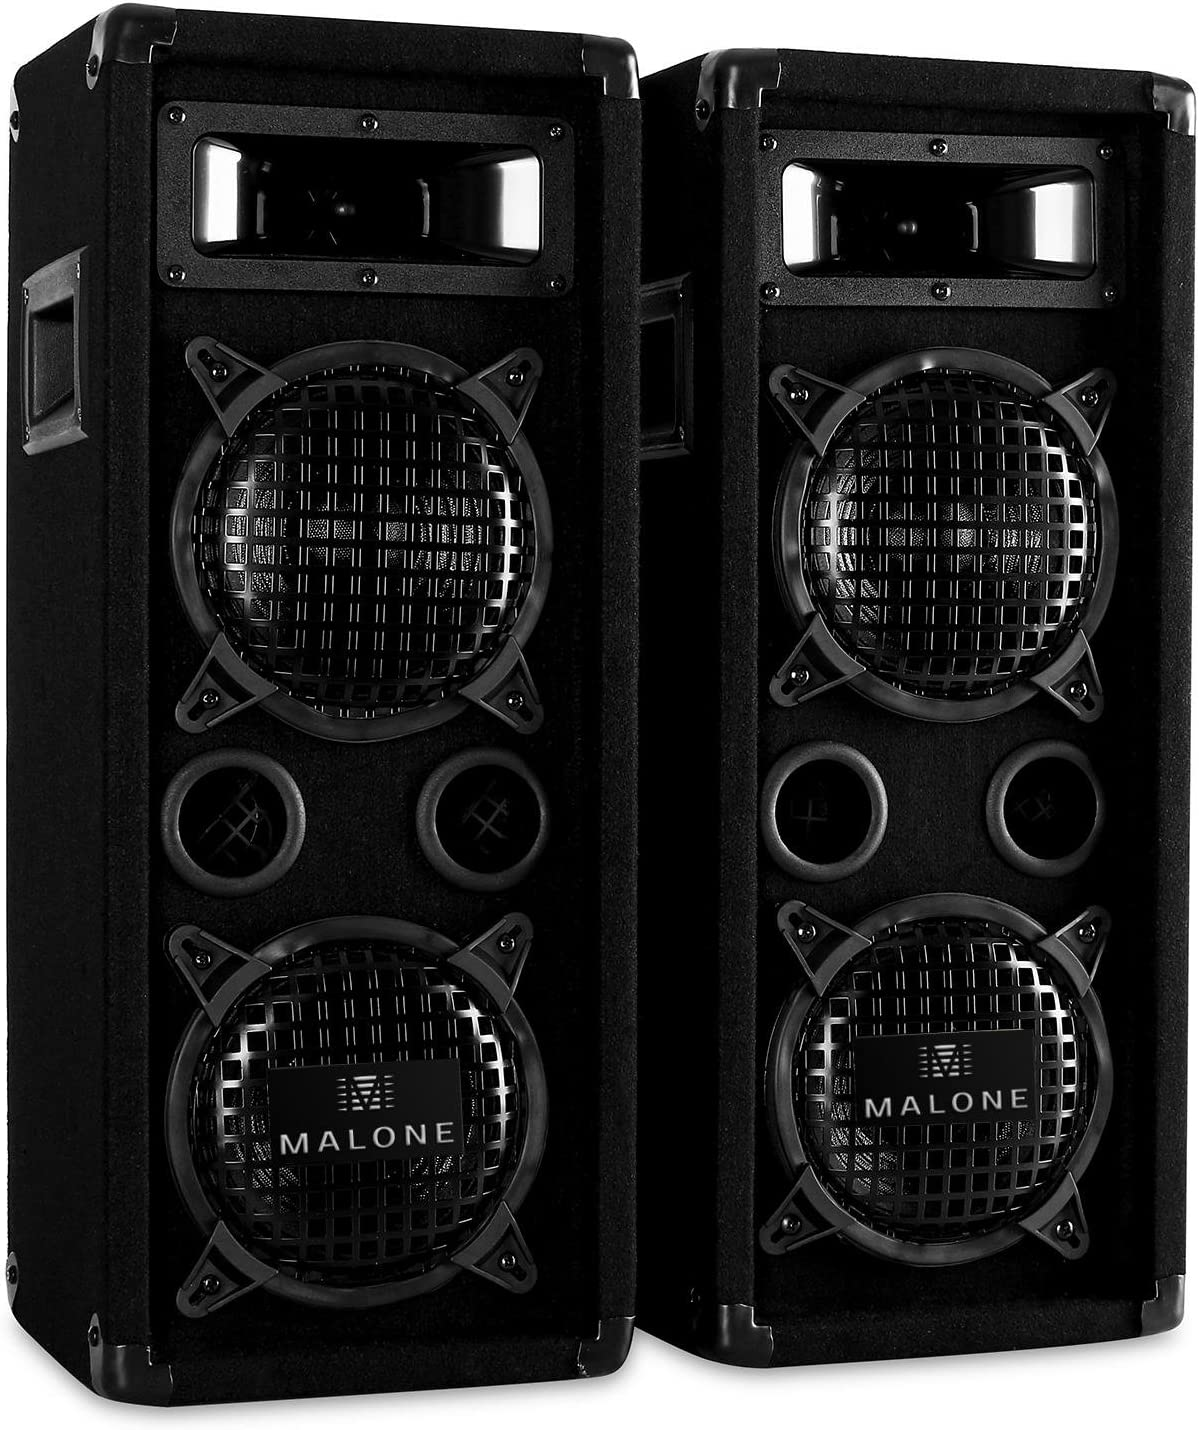 Malone PW-65X22 - Par de altavoces PA , Altavoces de 3 vías , máx 2x 600 W , 2x Subwoofer 16 cm , Twitter , Corneta de medios , 50 Hz-20kHz , Terminales estéreo , Rejilla , Caja de bajo , Asa , Negro